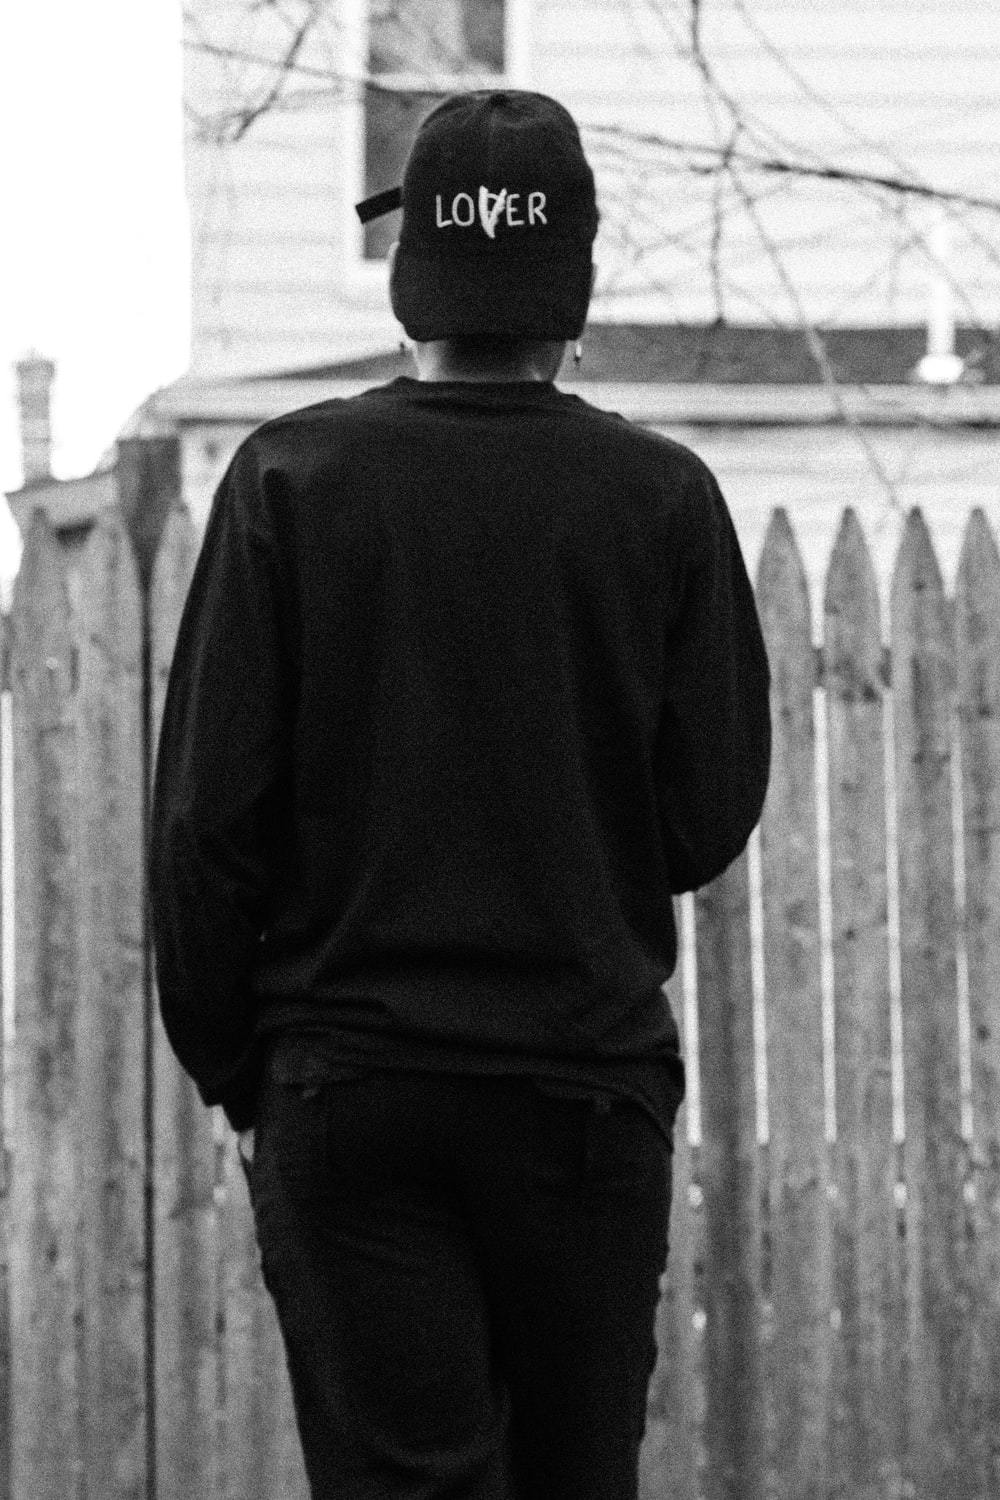 man in black long sleeve shirt and black pants standing in front of white wooden fence